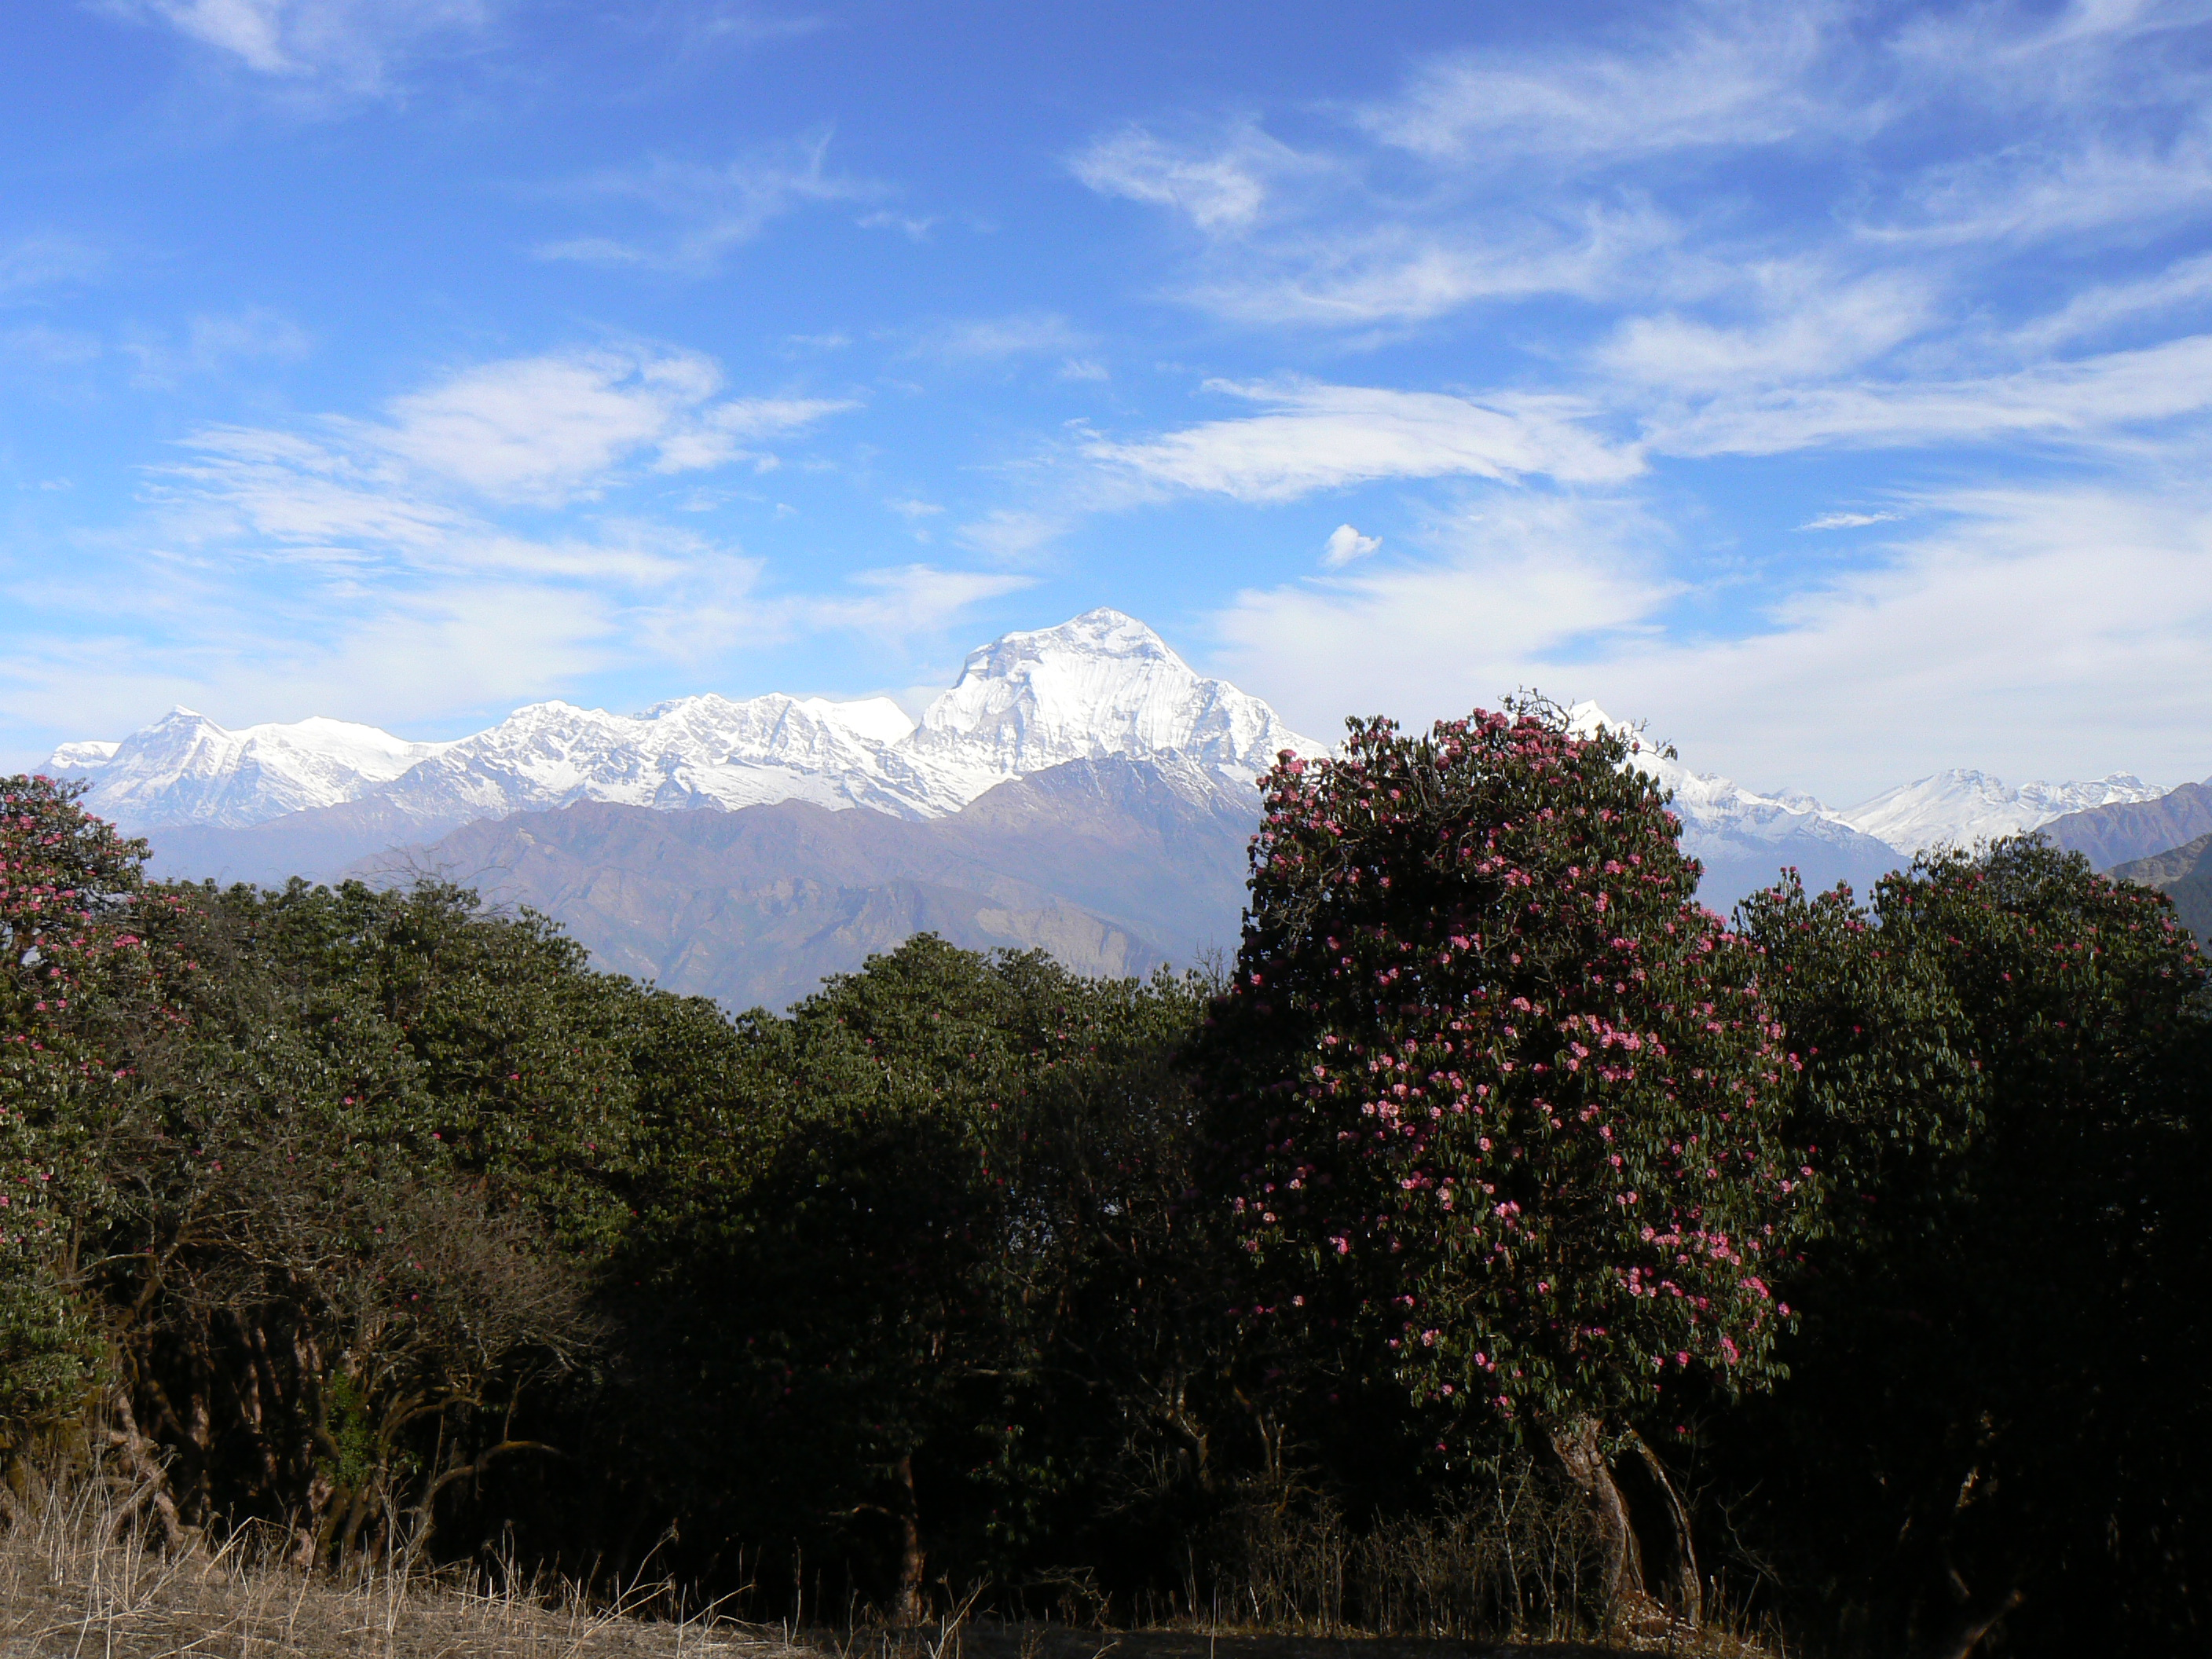 Trips of a Lifetime – The Annapurna Circuit (Day 15 to Day 19 – The End)